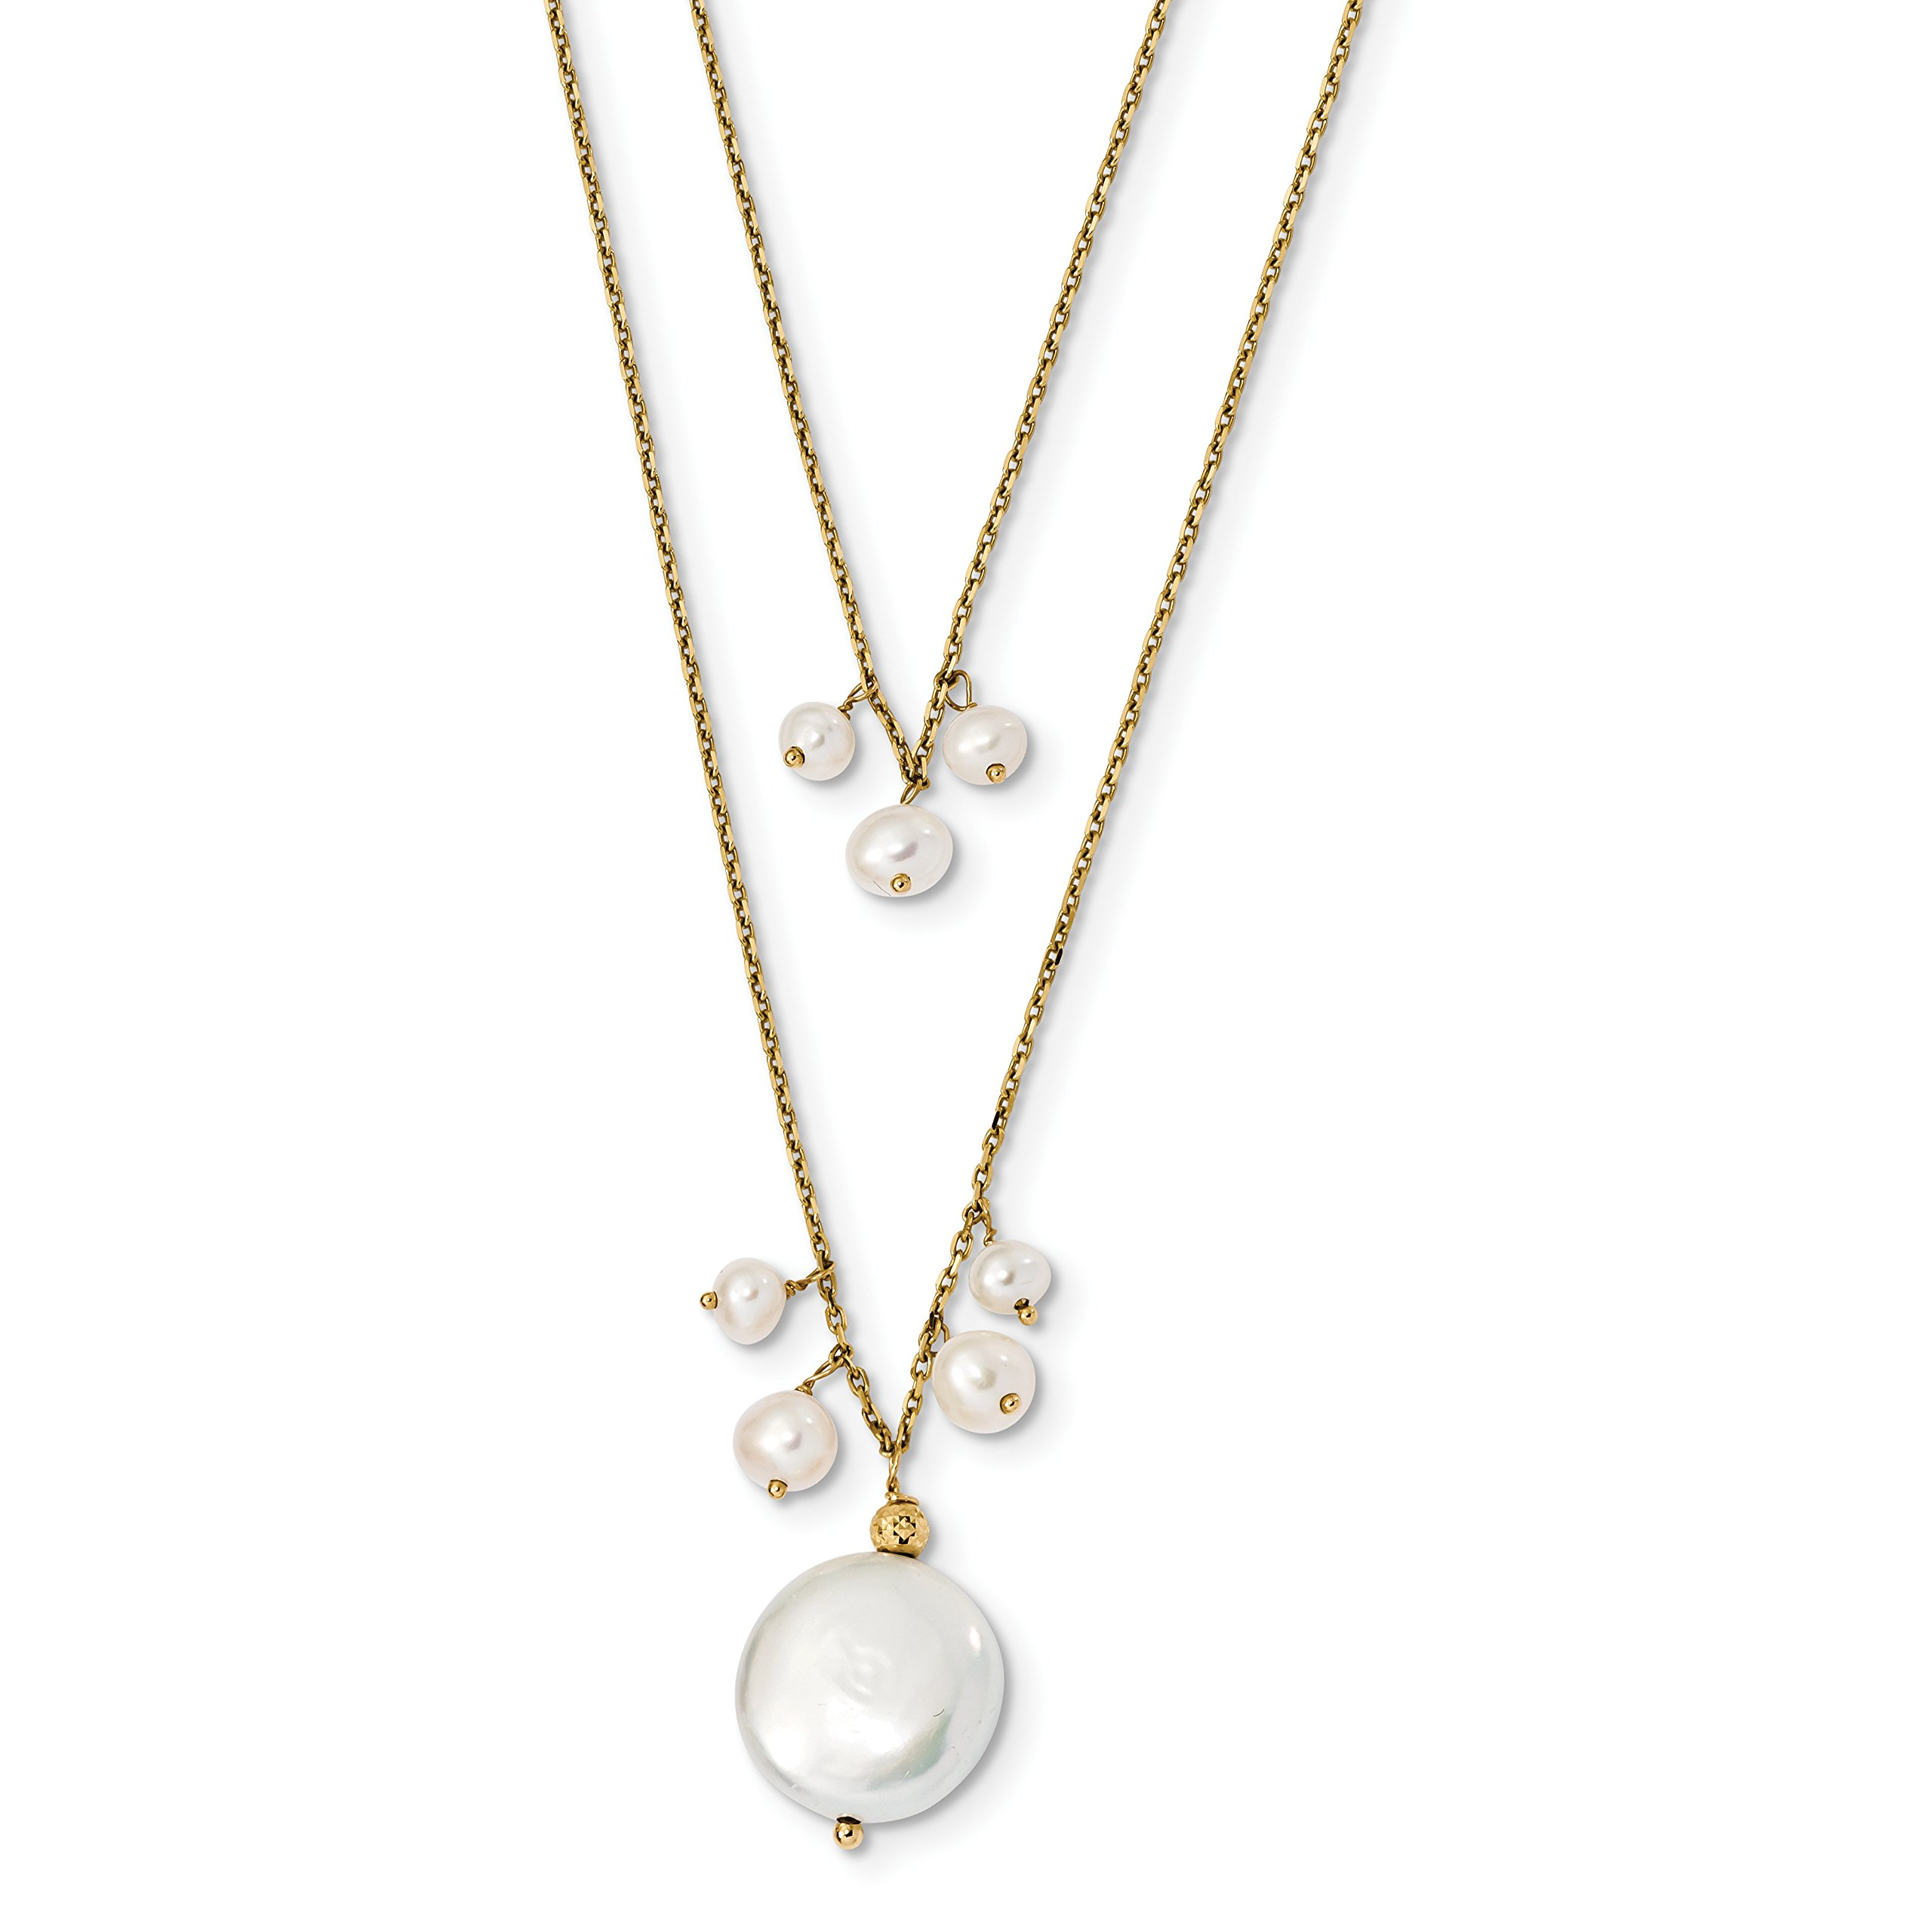 ICE CARATS 14k Yellow Gold 14mm Coin 4mm Rice Freshwater Cultured Pearl 2 Strand Chain Necklace Fine Jewelry Gift Set For Women Heart